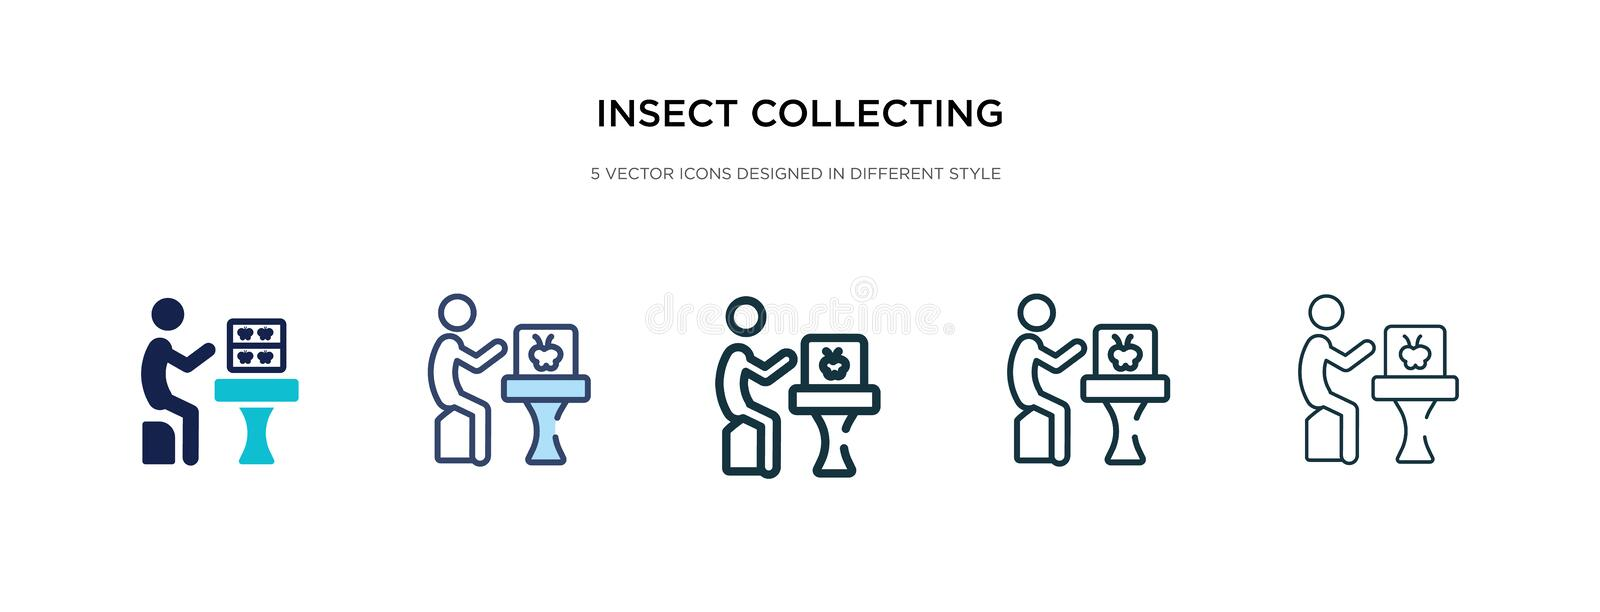 Insect collecting icon in different style vector illustration. two colored and black insect collecting vector icons designed in stock illustration